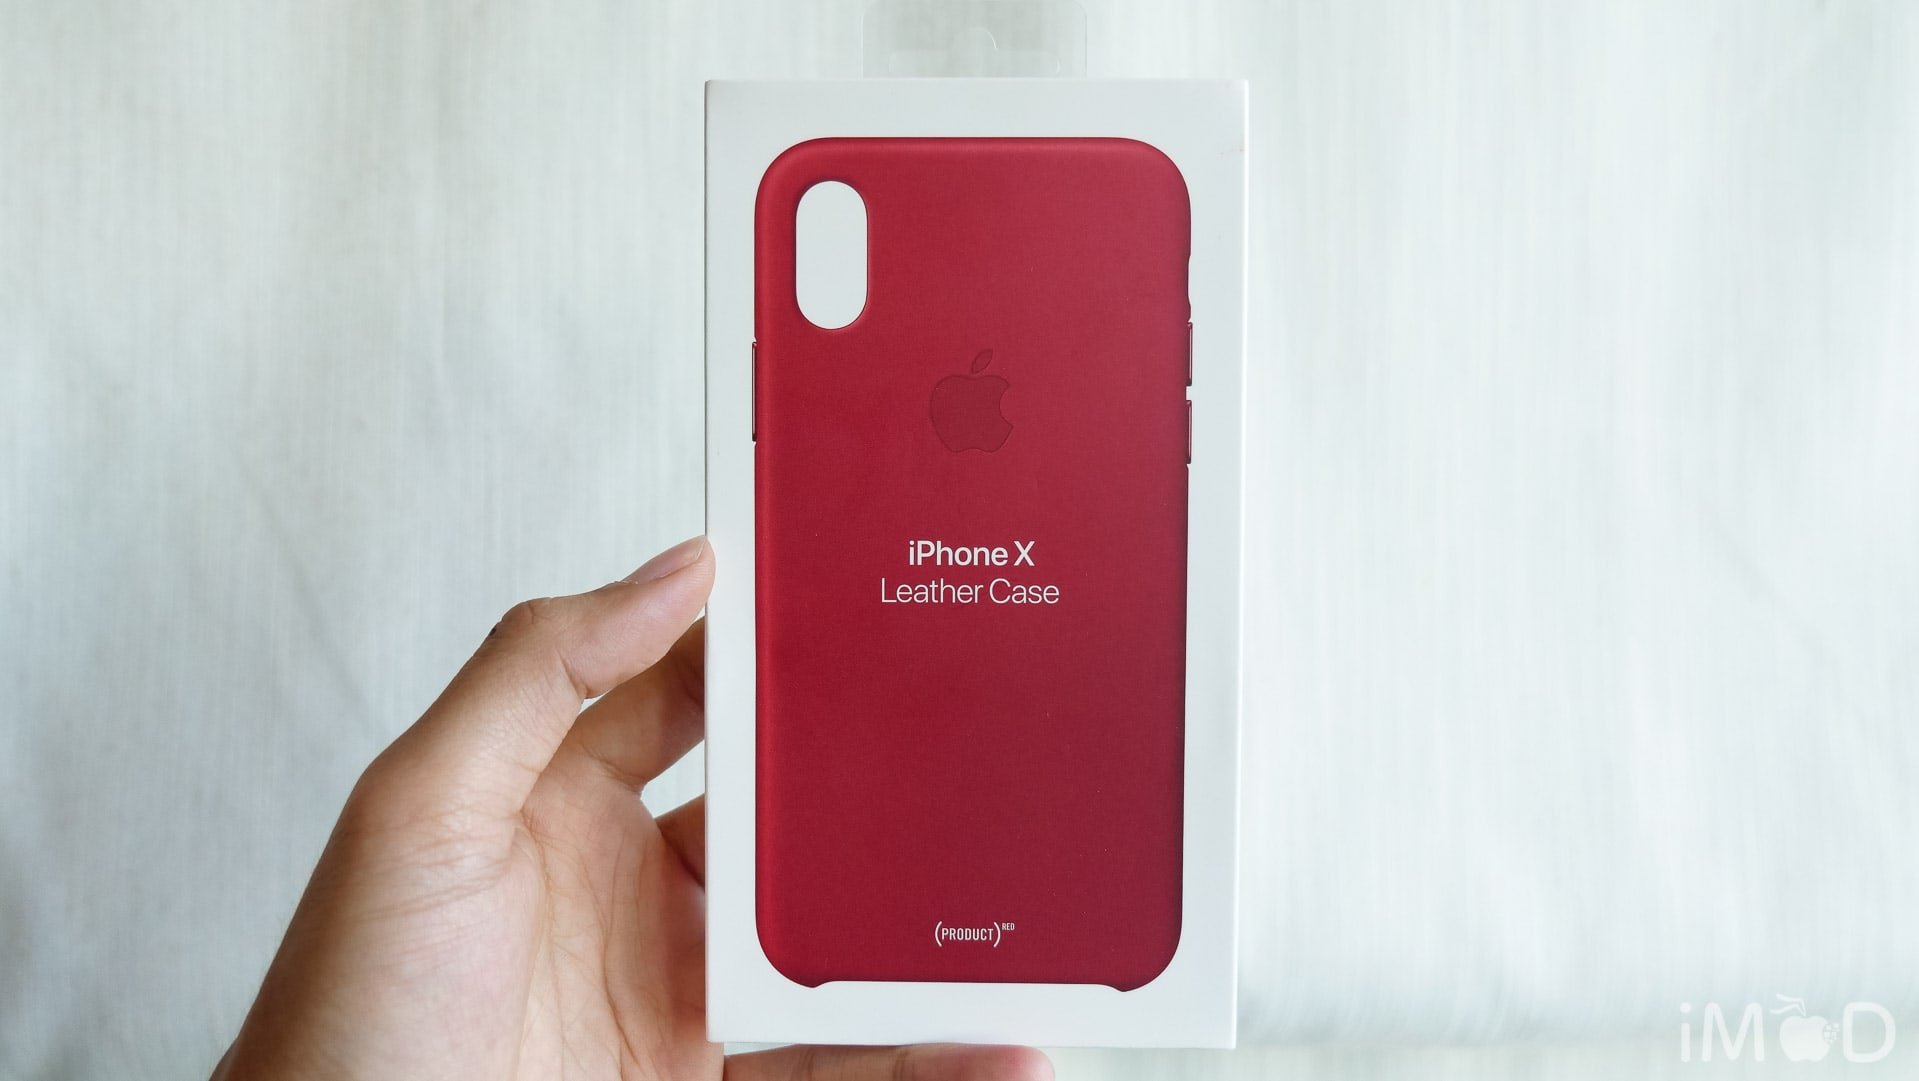 Iphone X Leather Case Product Red 6561